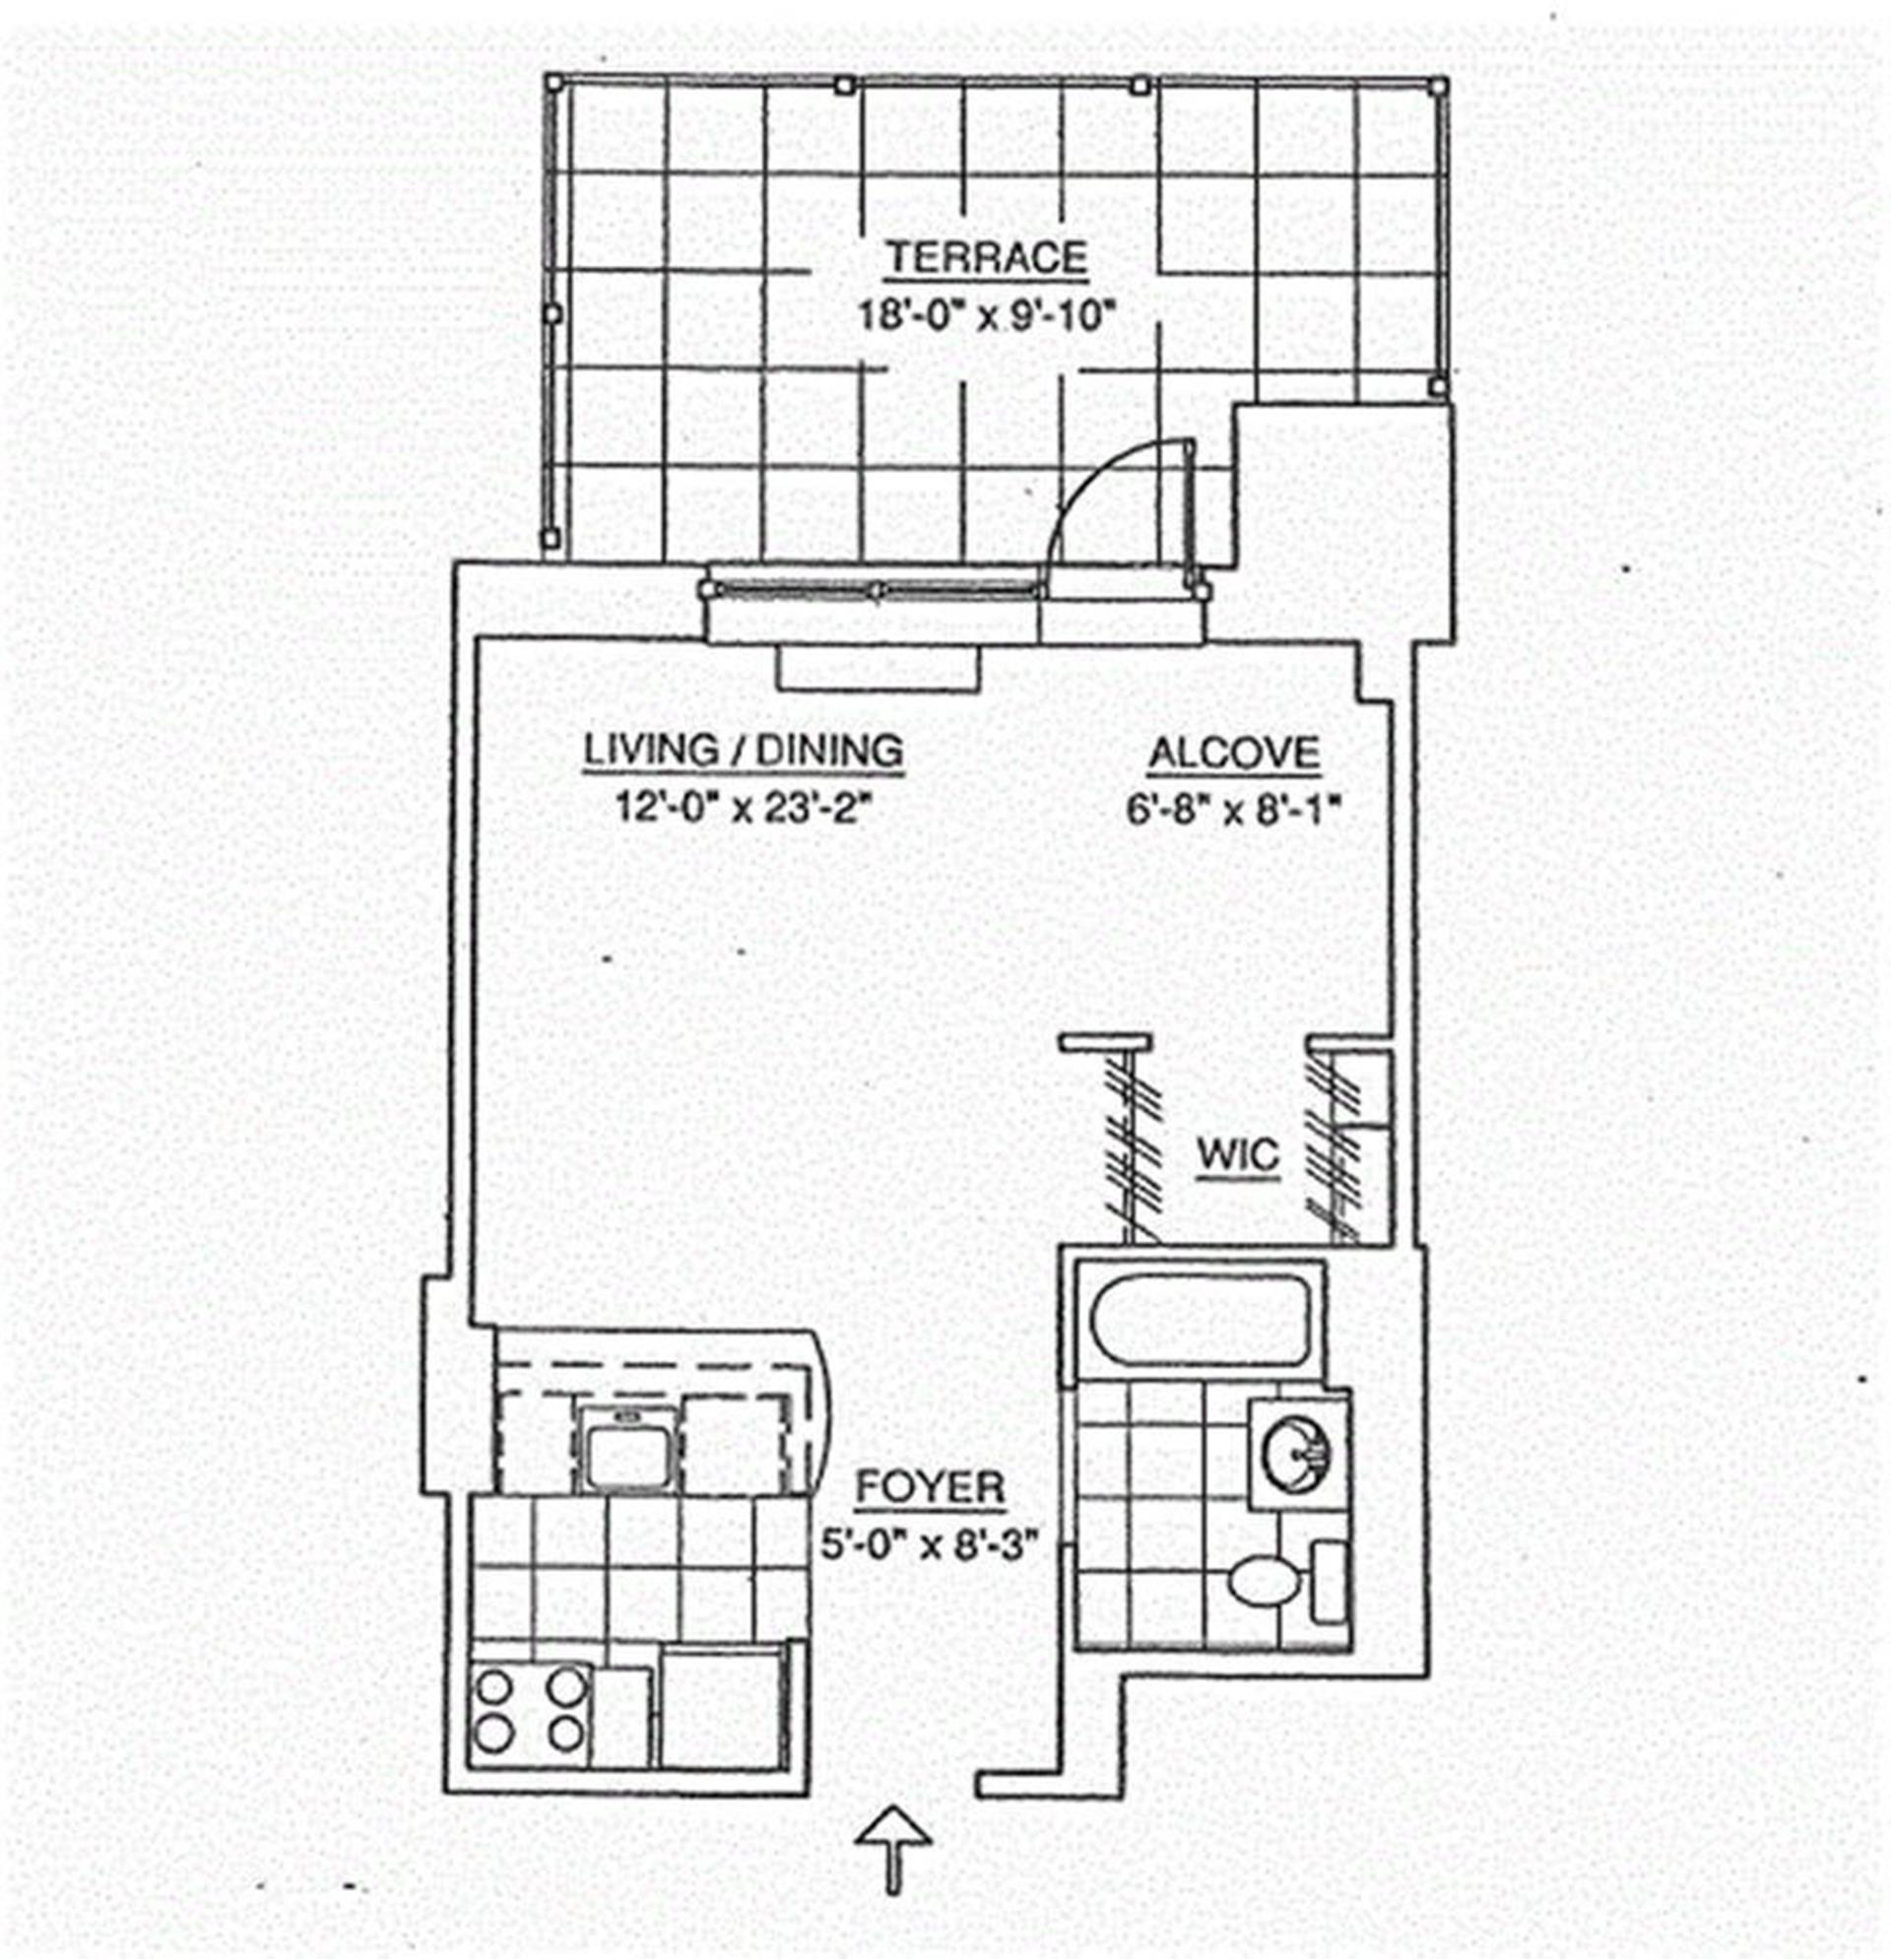 Floor plan of 555 West 23rd St, S3P - Chelsea, New York